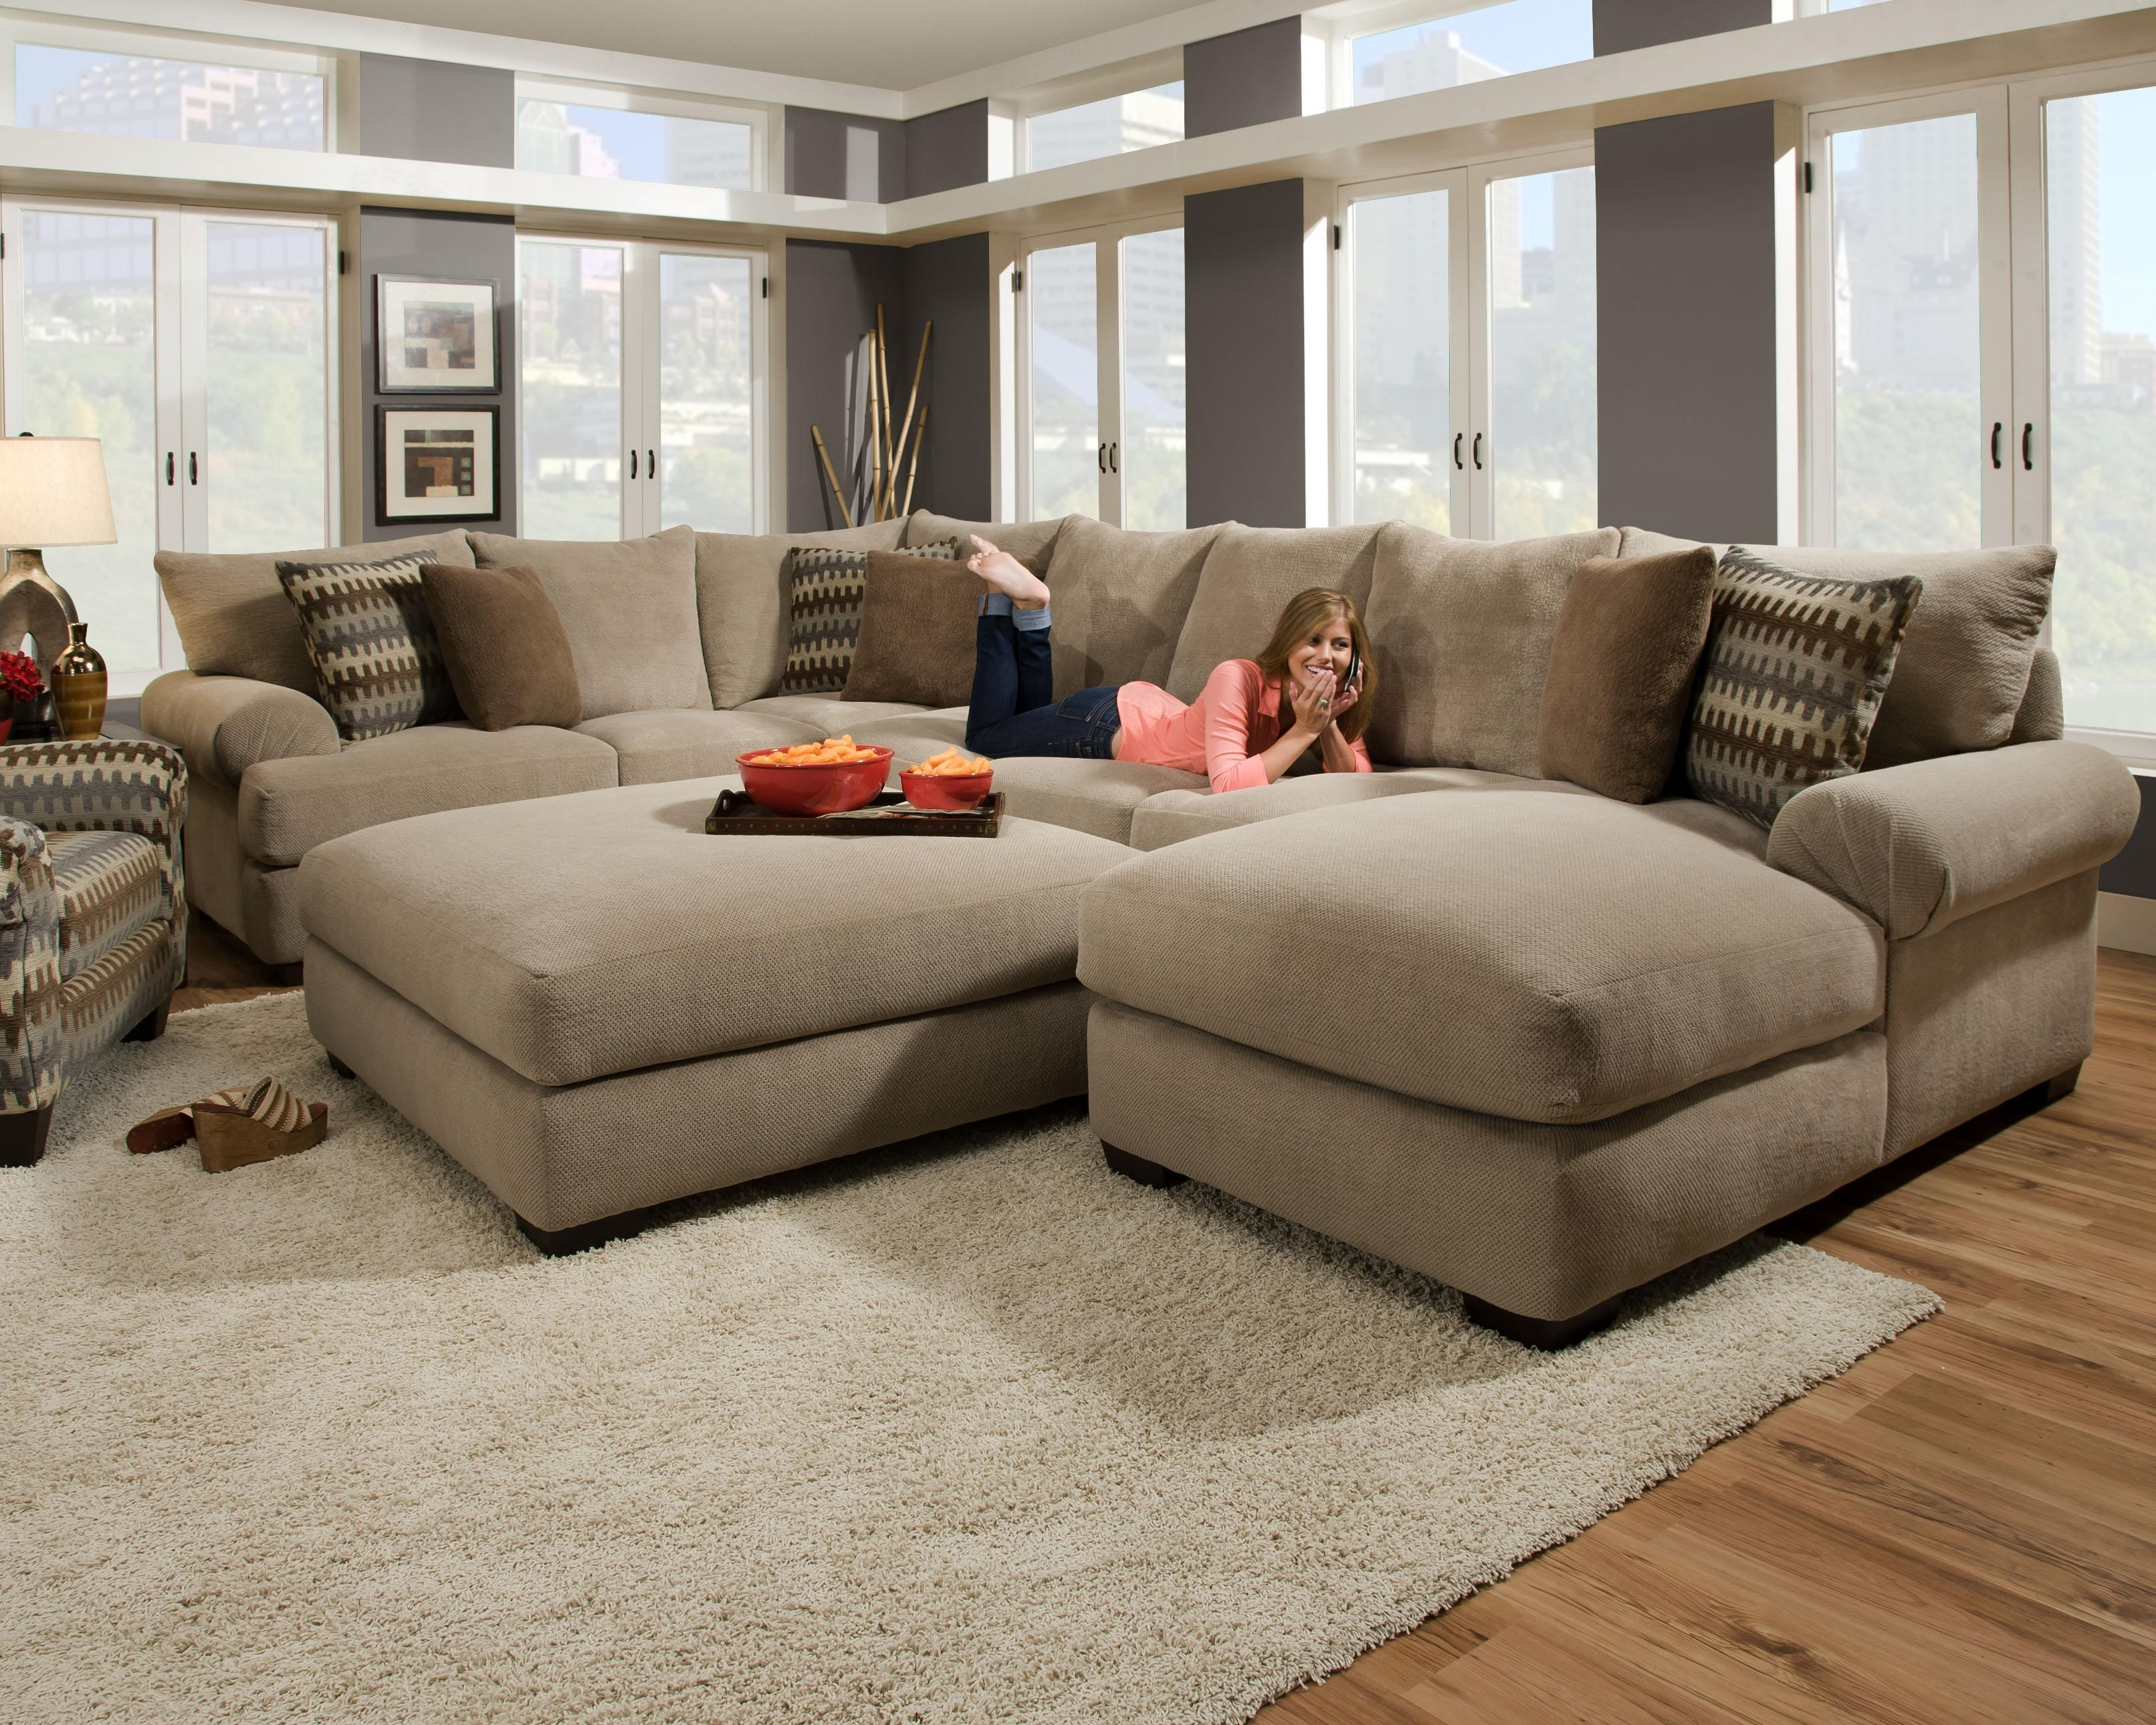 Ontario Canada Sectional Sofas Regarding Recent Sectional Sofas Under 1000 – Home Design Ideas And Pictures (View 12 of 20)